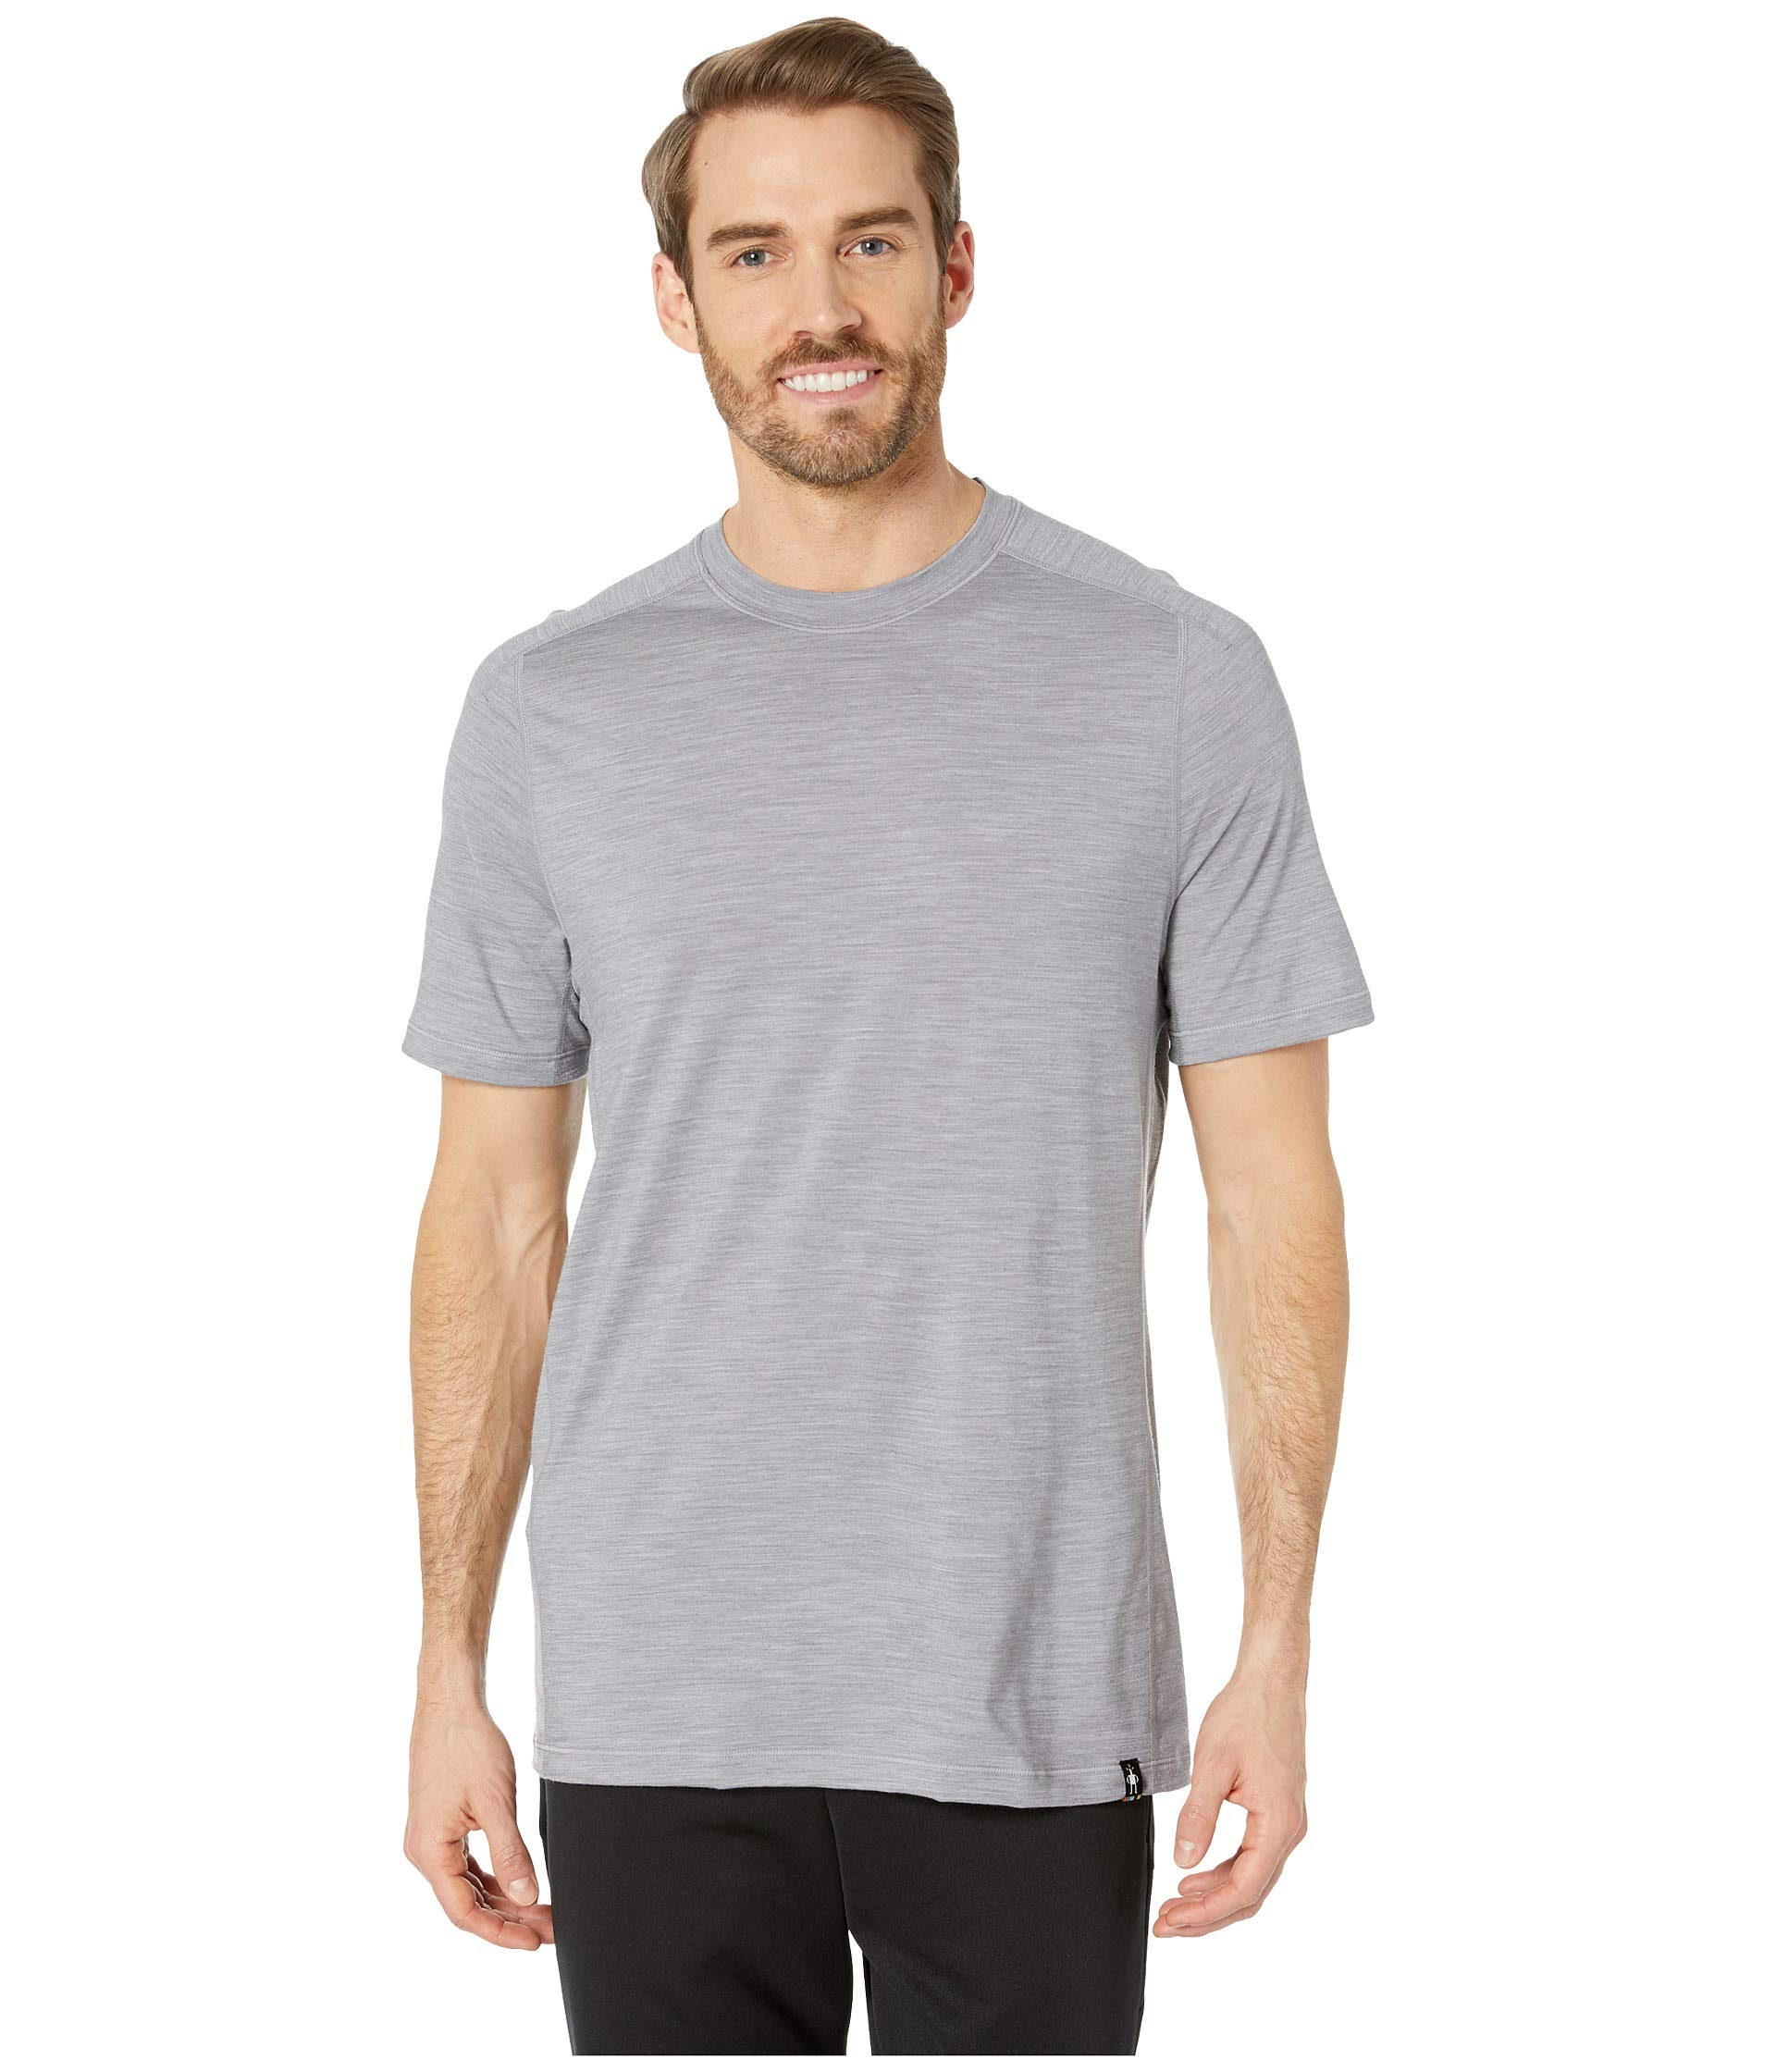 SmartWool Men's Merino Sport 150 Tech Tee Light Gray Heather Large